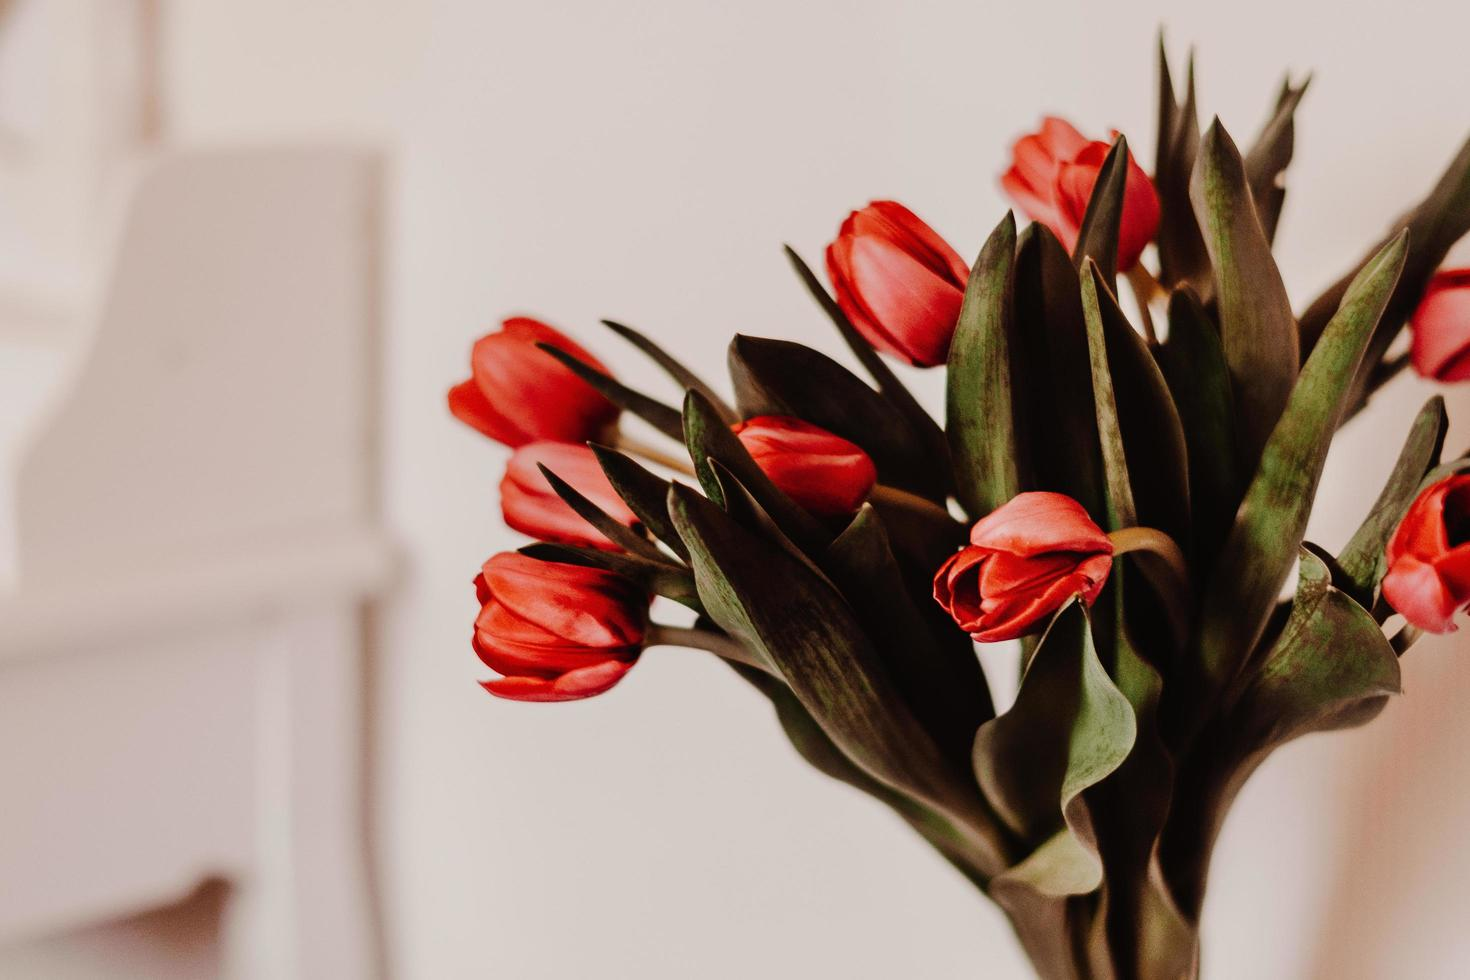 tulipes rouges dans un vase photo